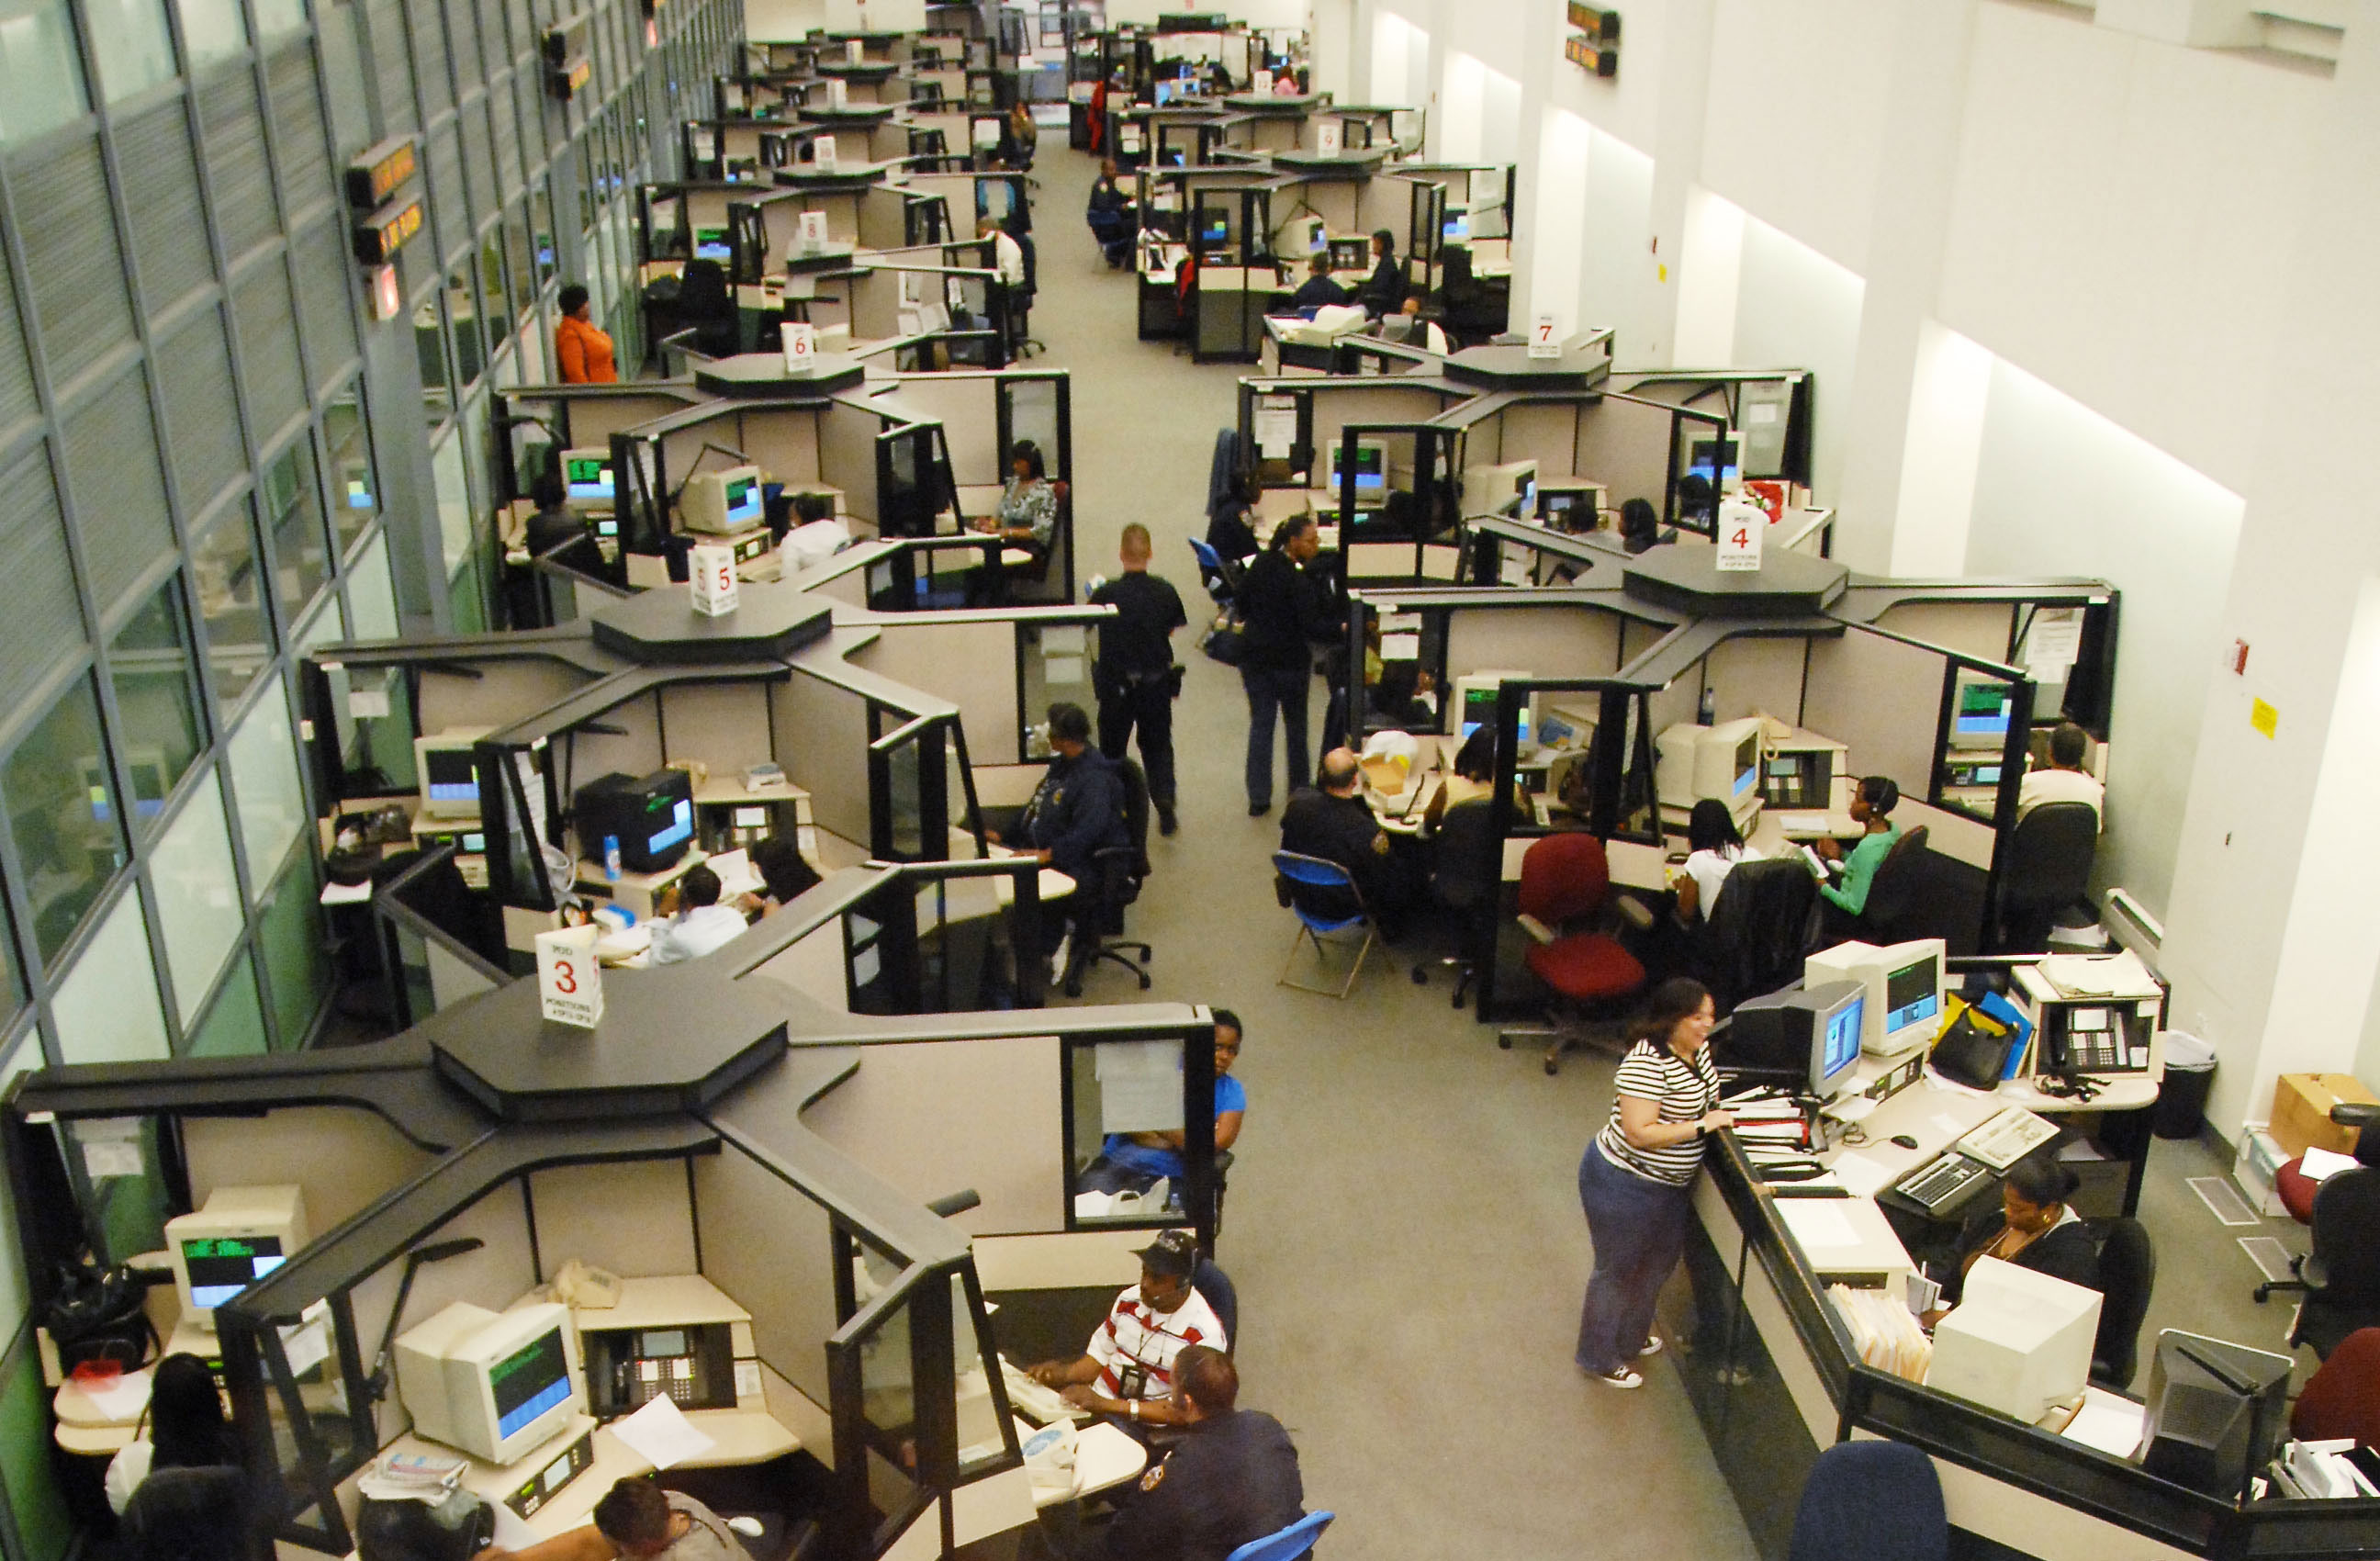 Contact centers: work smarter not harder